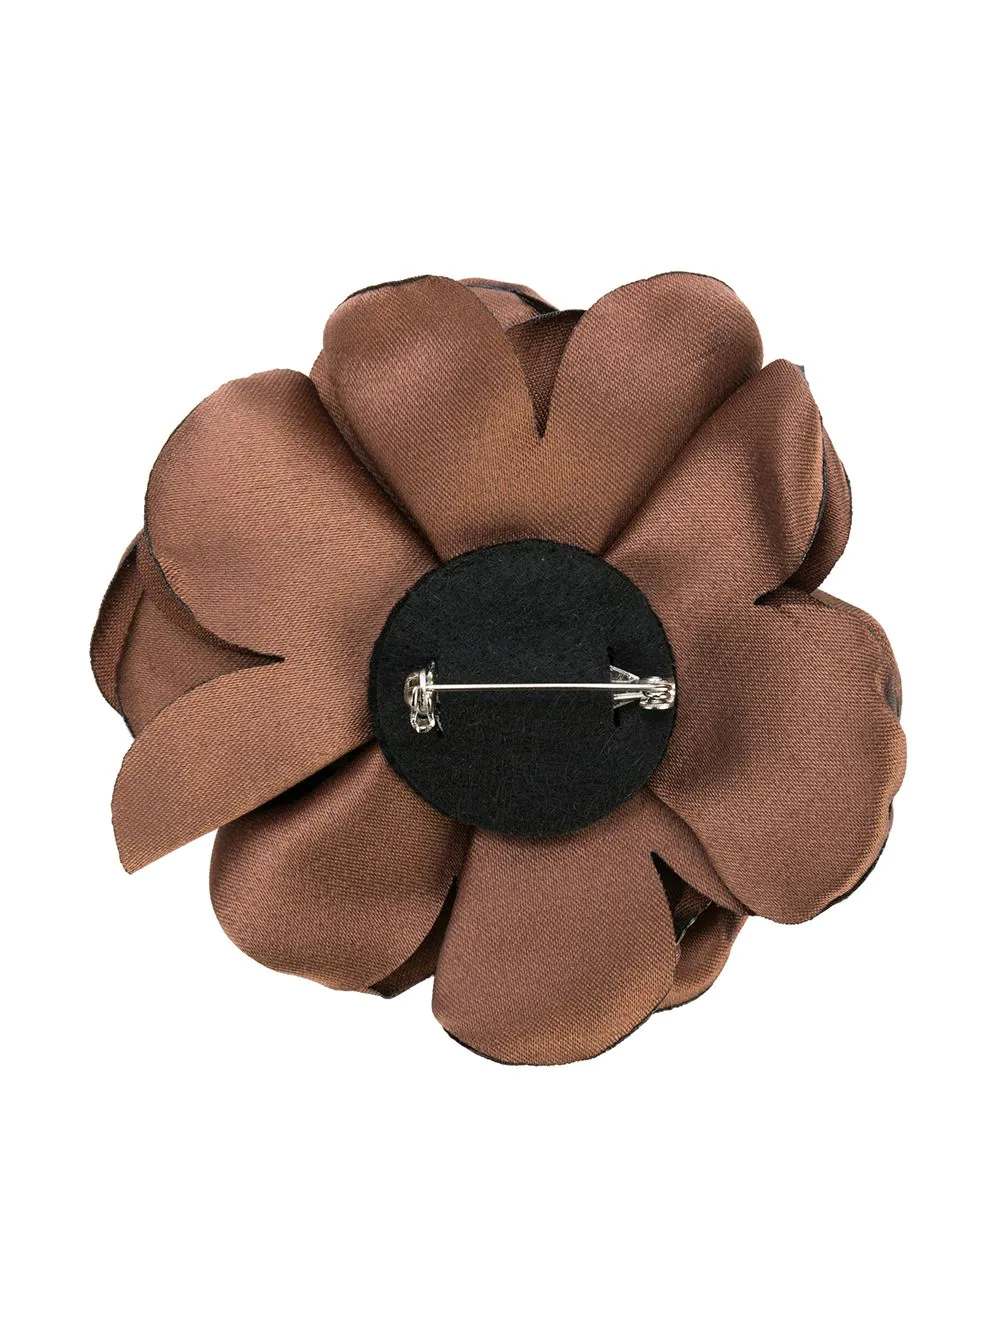 Caffe' D'orzo   Caffe' D'orzo rose brooch   Clouty